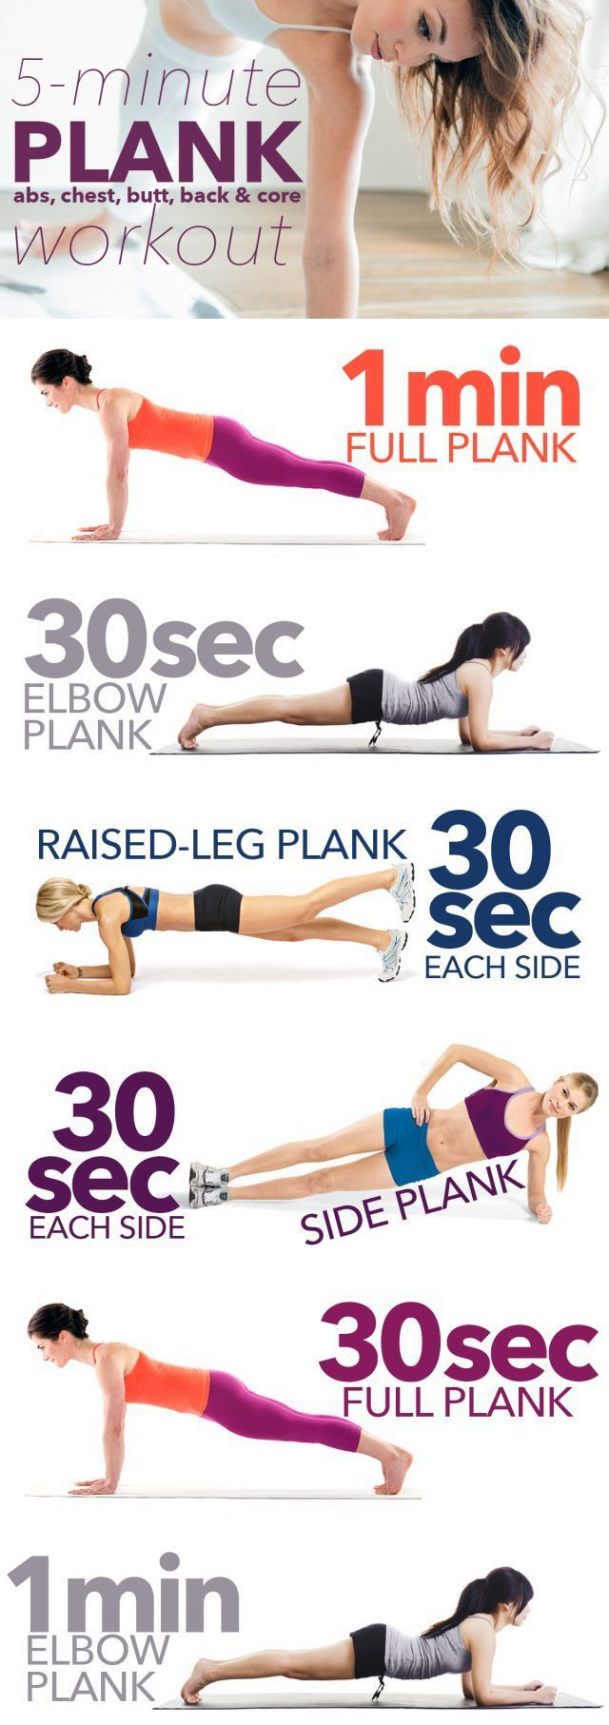 //9 Amazing Flat Belly Workouts To Help Sculpt Your Abs! #fitness #reducebellyfat